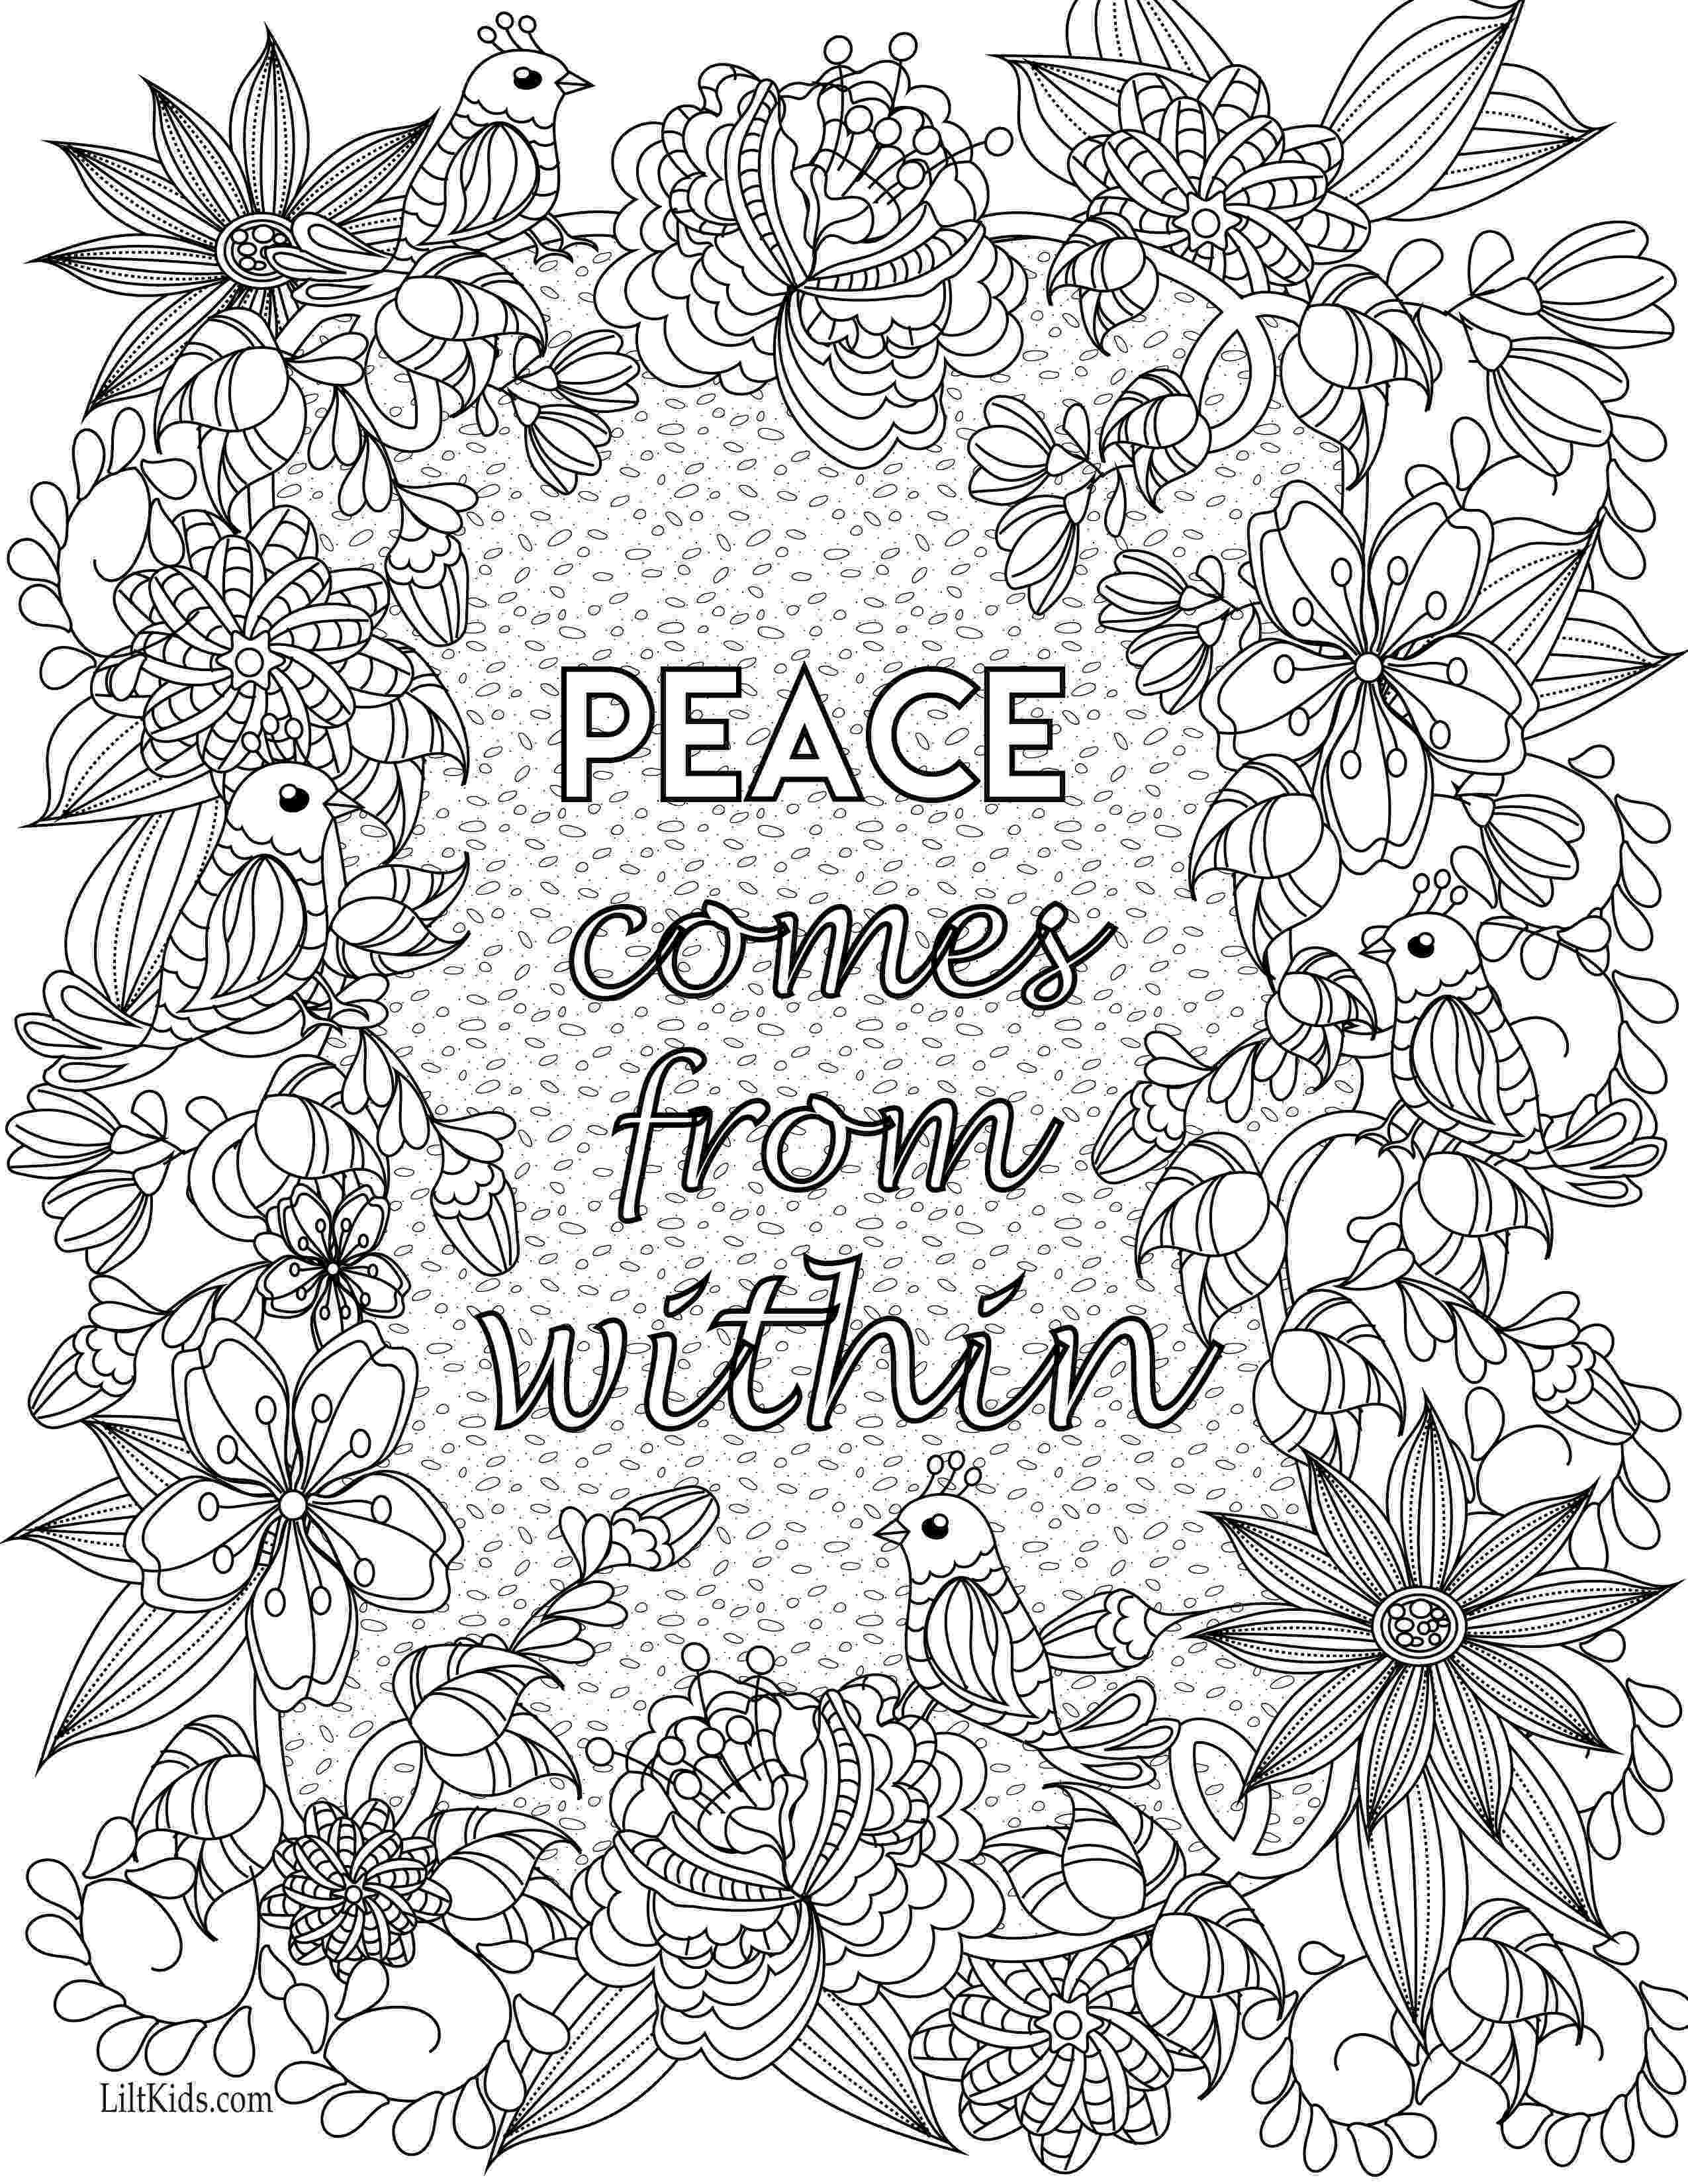 free printable quote coloring pages for adults free inspirational quote adult coloring book image from for coloring pages free quote printable adults